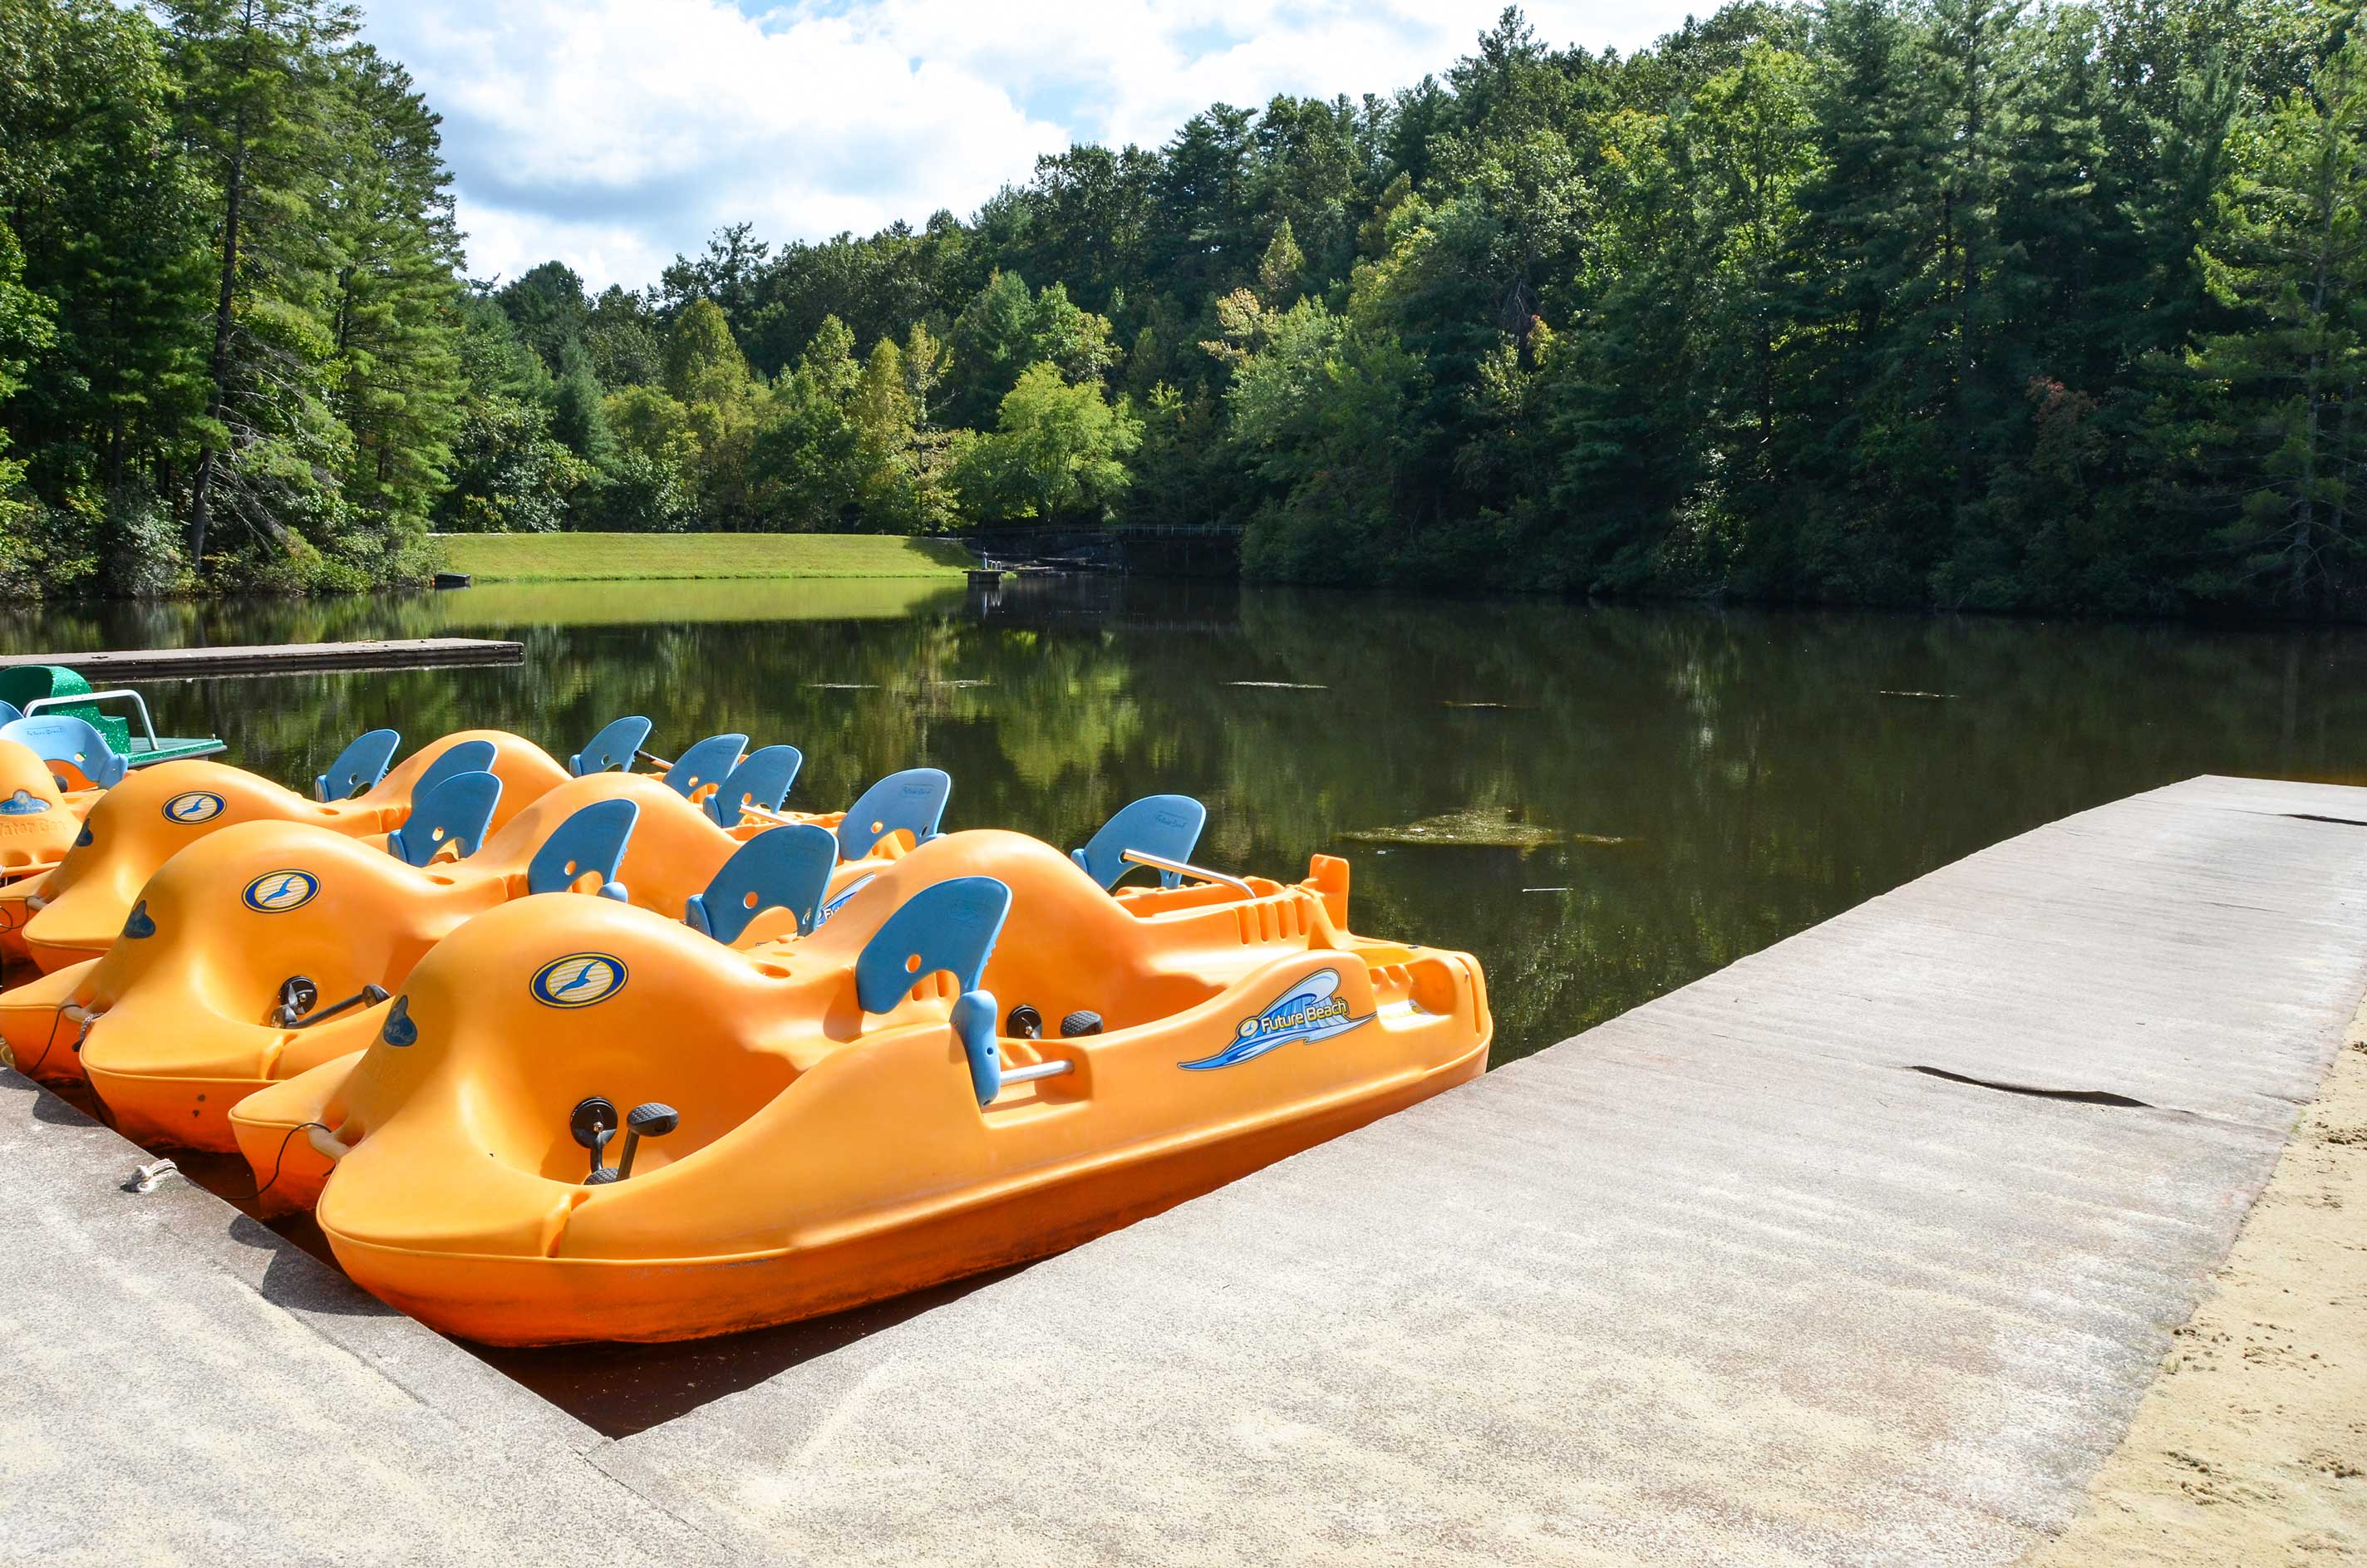 Take a paddle boat out for a spin - just like in summer camp.